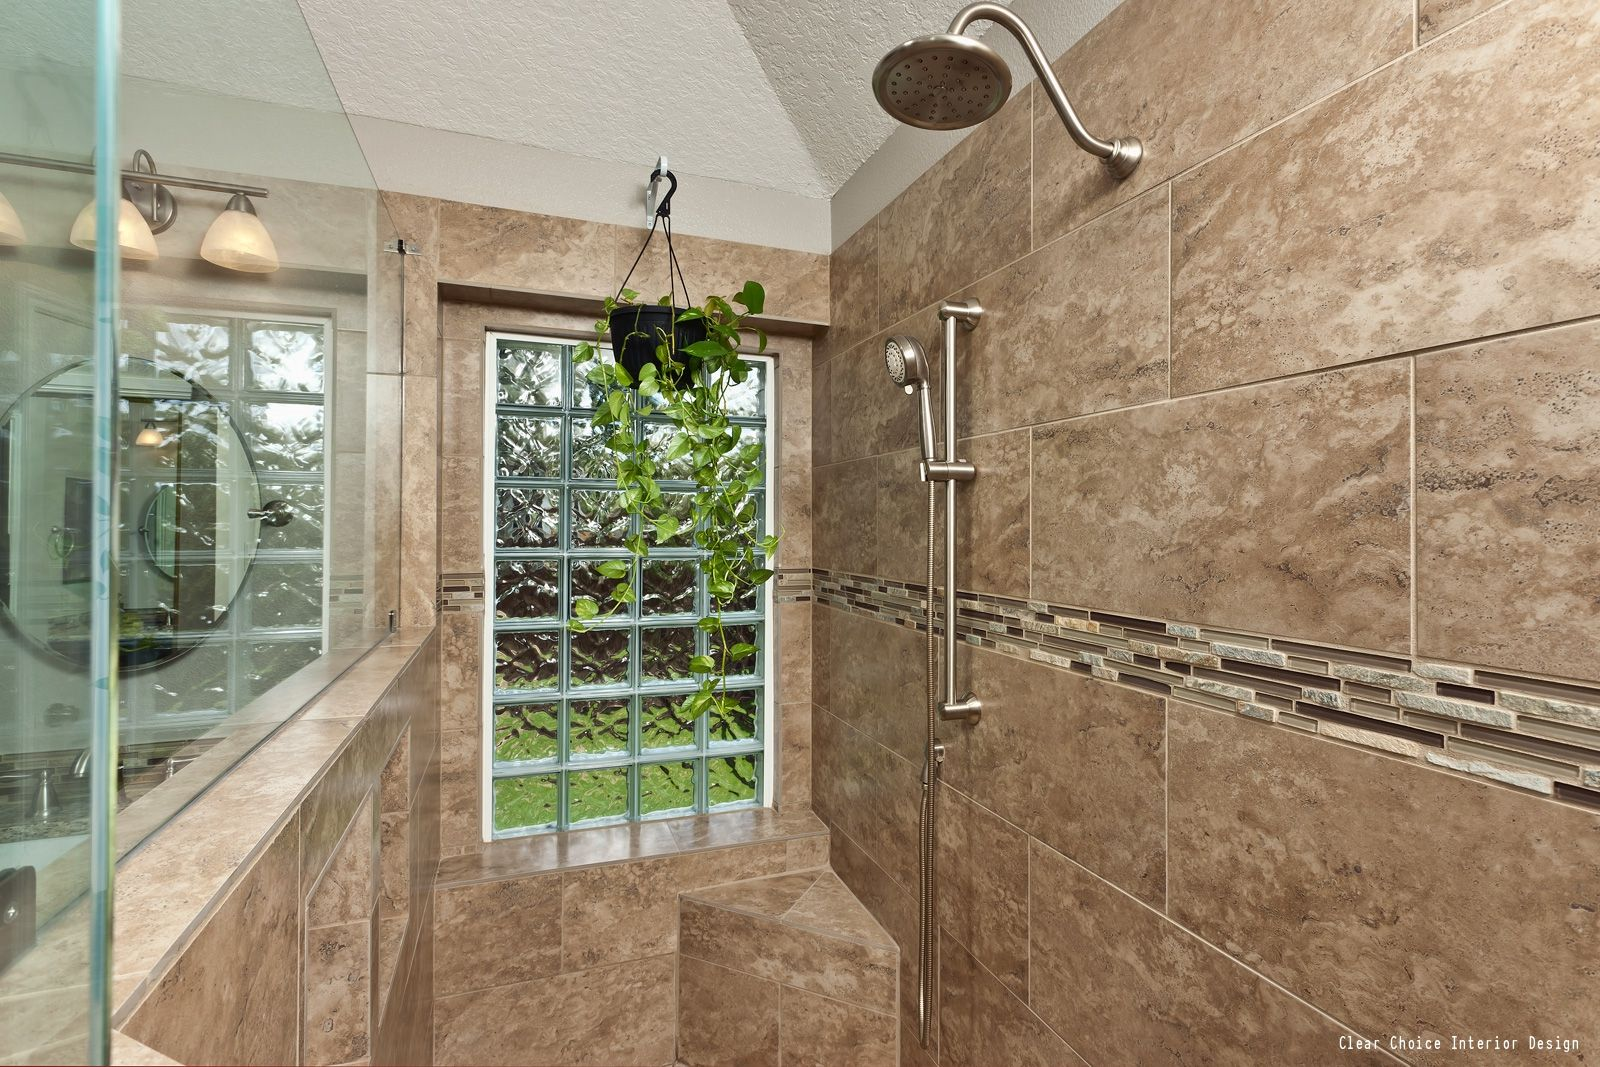 A Beautiful Shower With Brown Tile And A Large Window Looking To